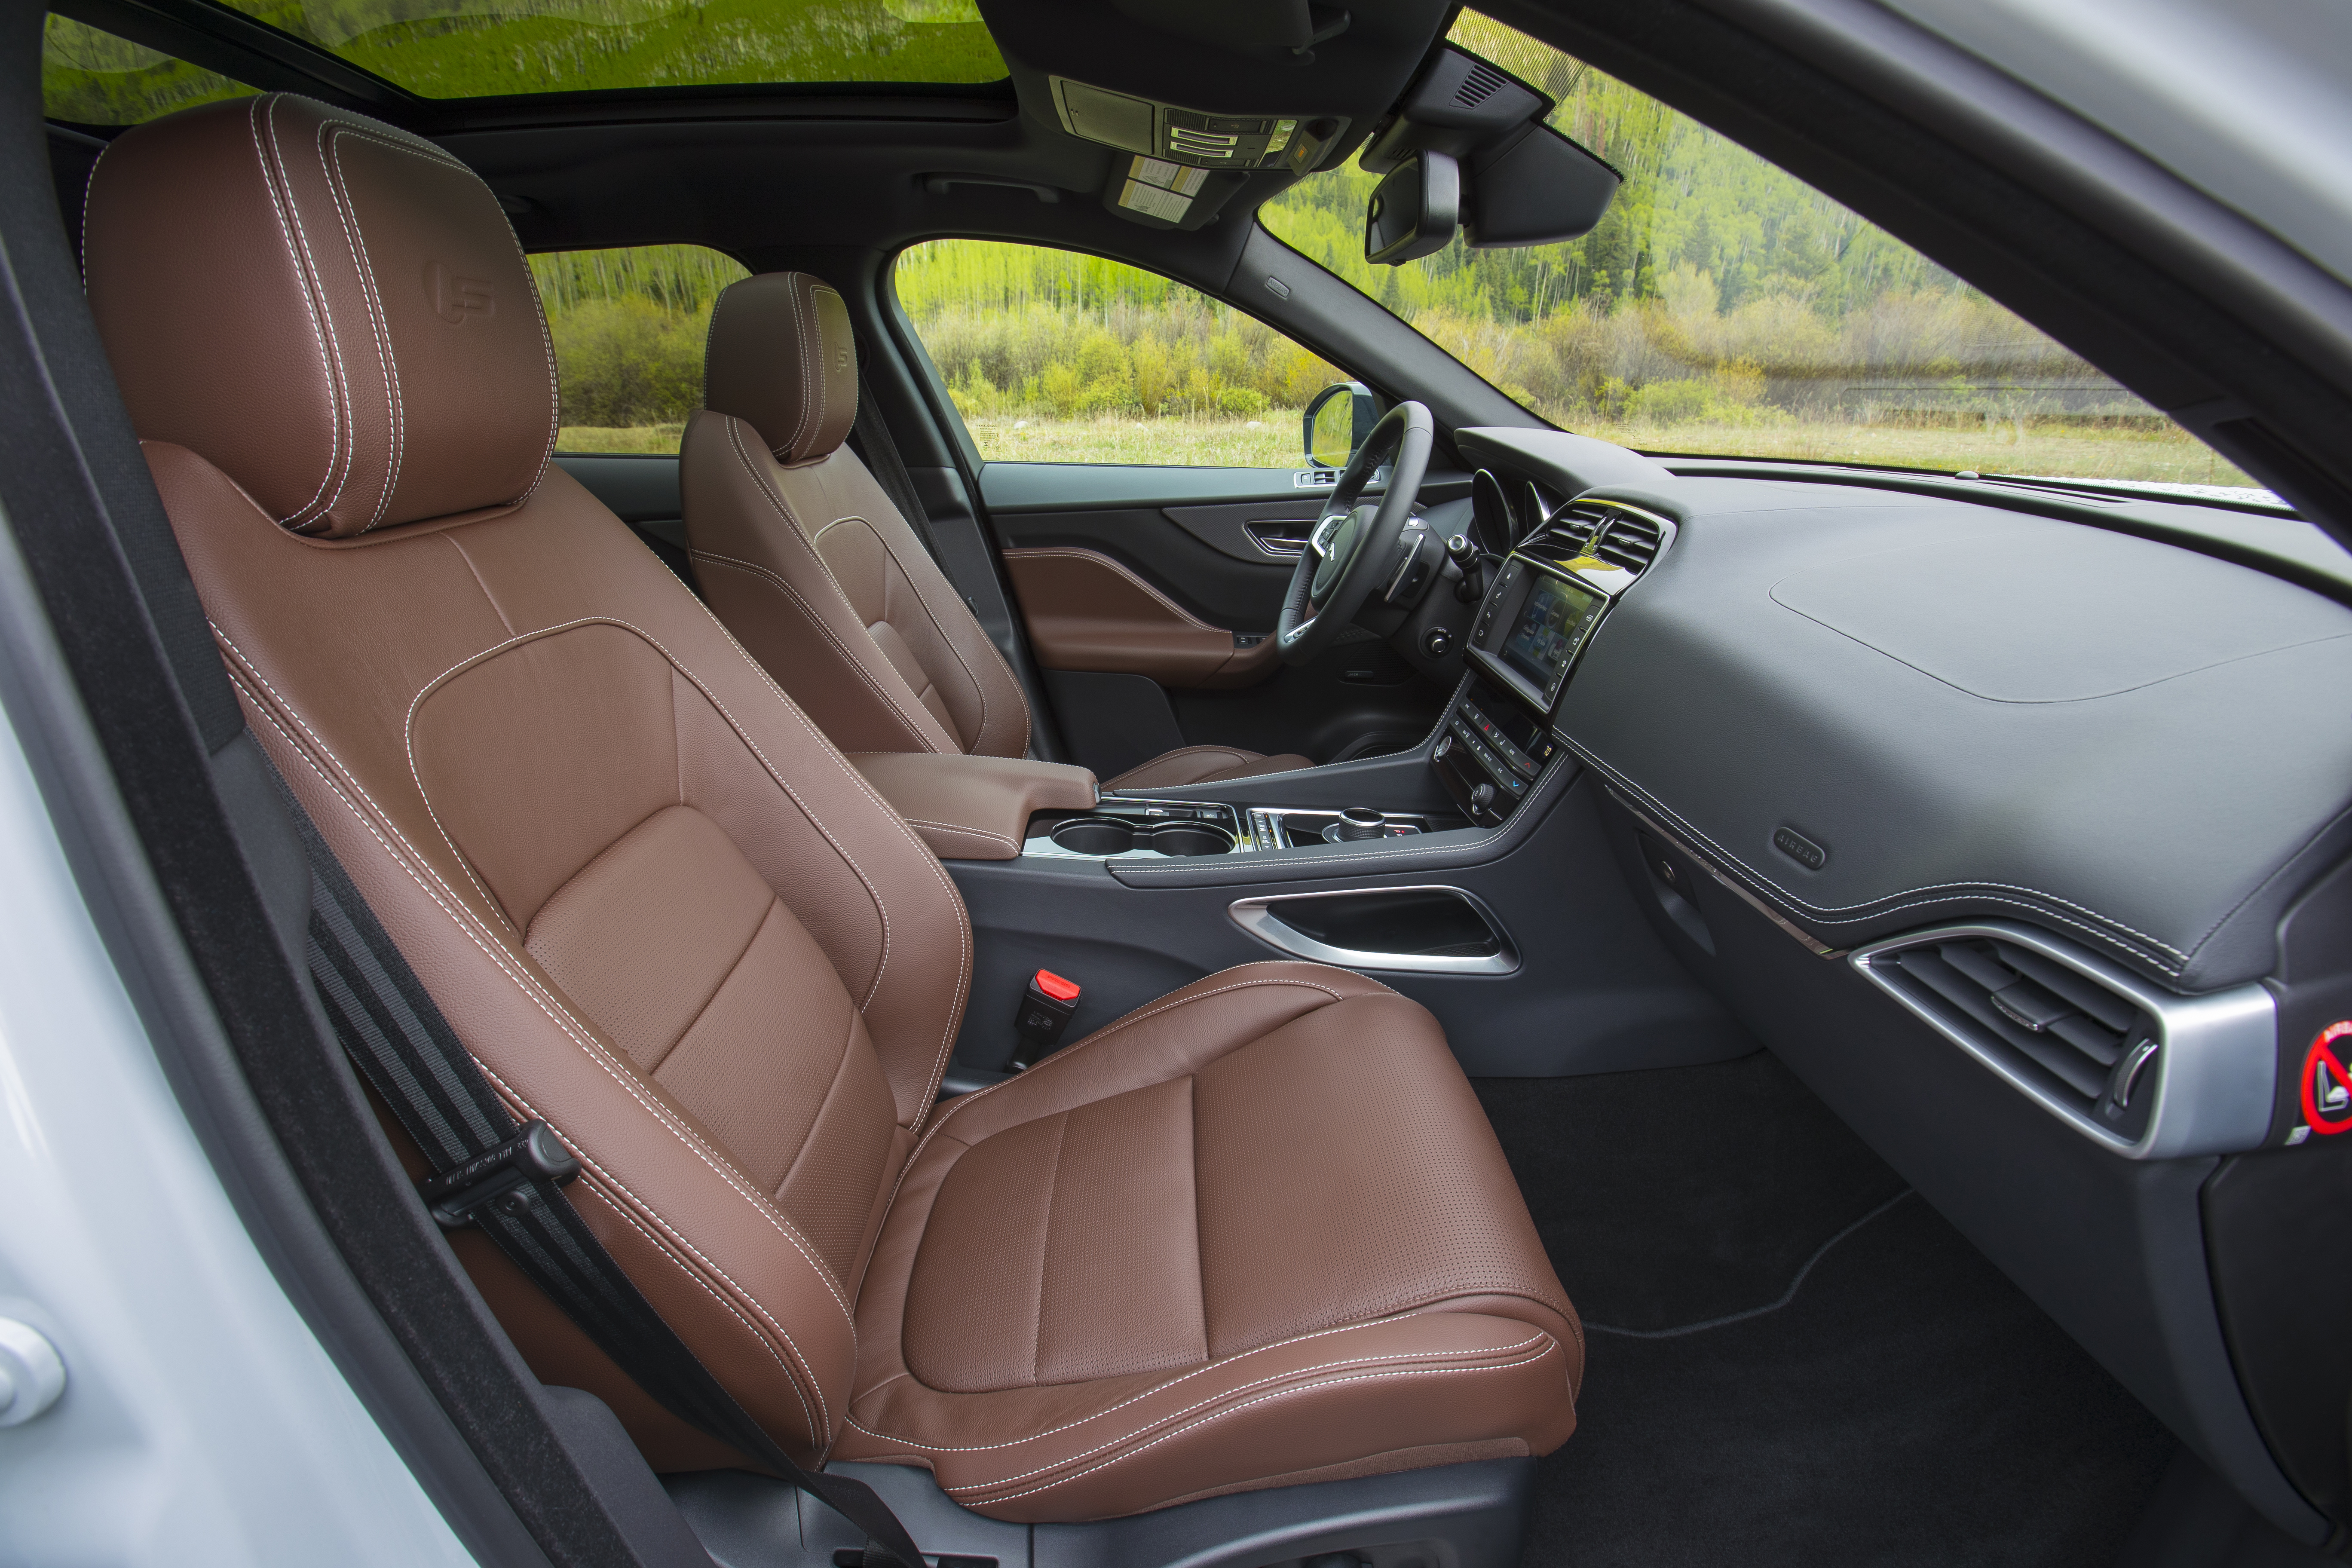 The interior of the 2017 Jaguar F Pace is certainly handsome, though the seats are firm and storage cubbies lacking.